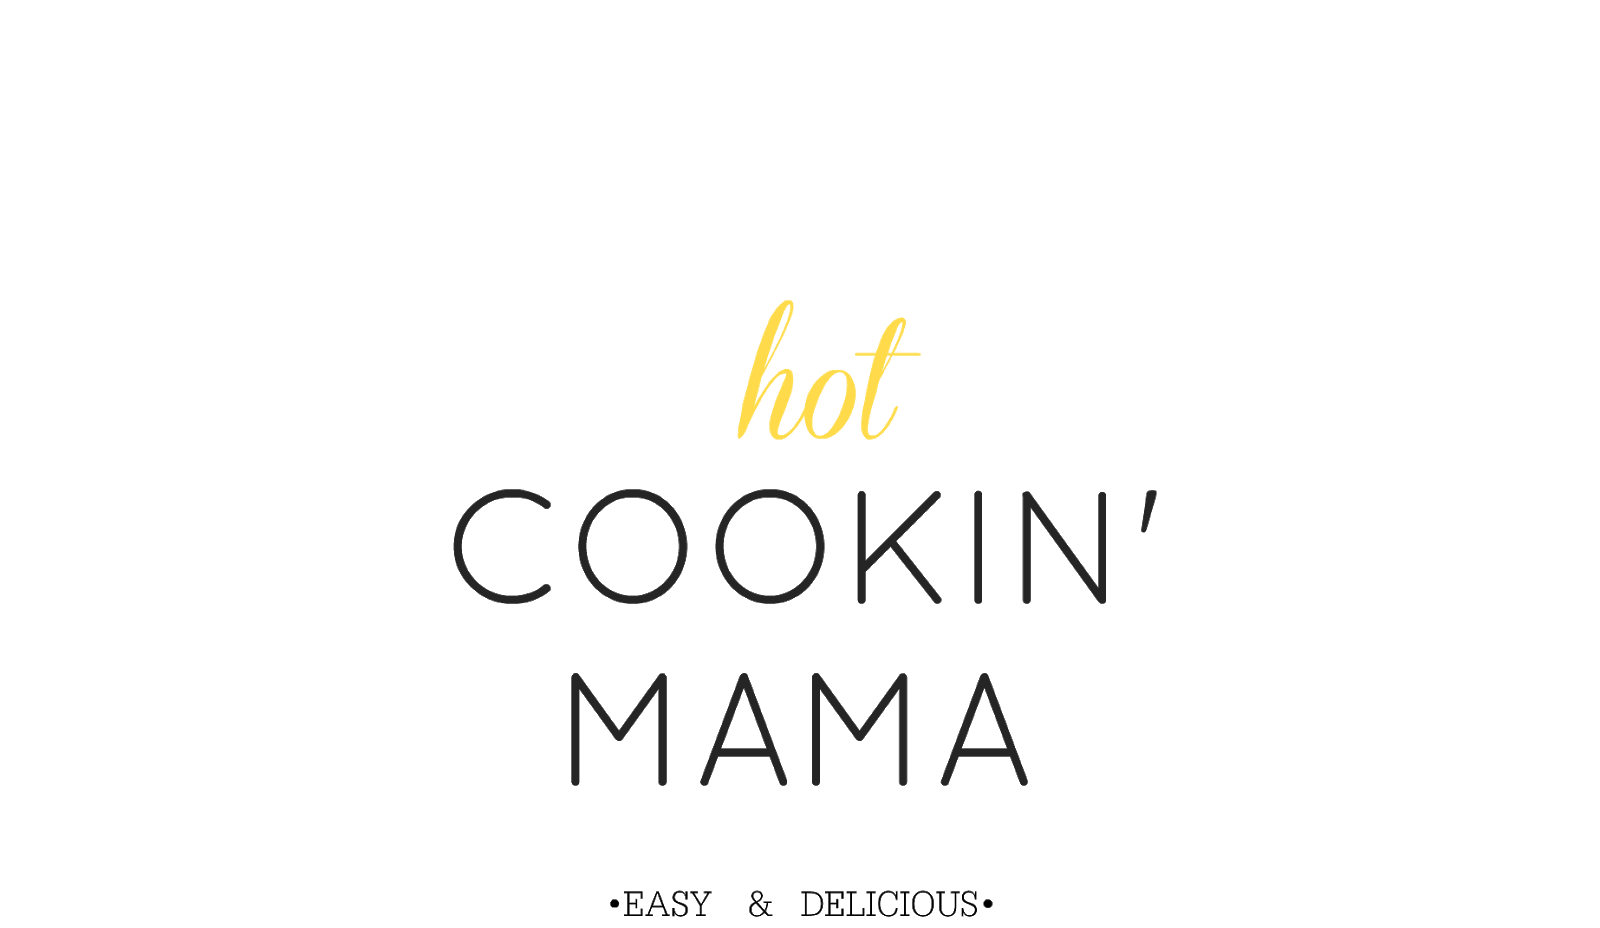 Hot Cookin' Mama